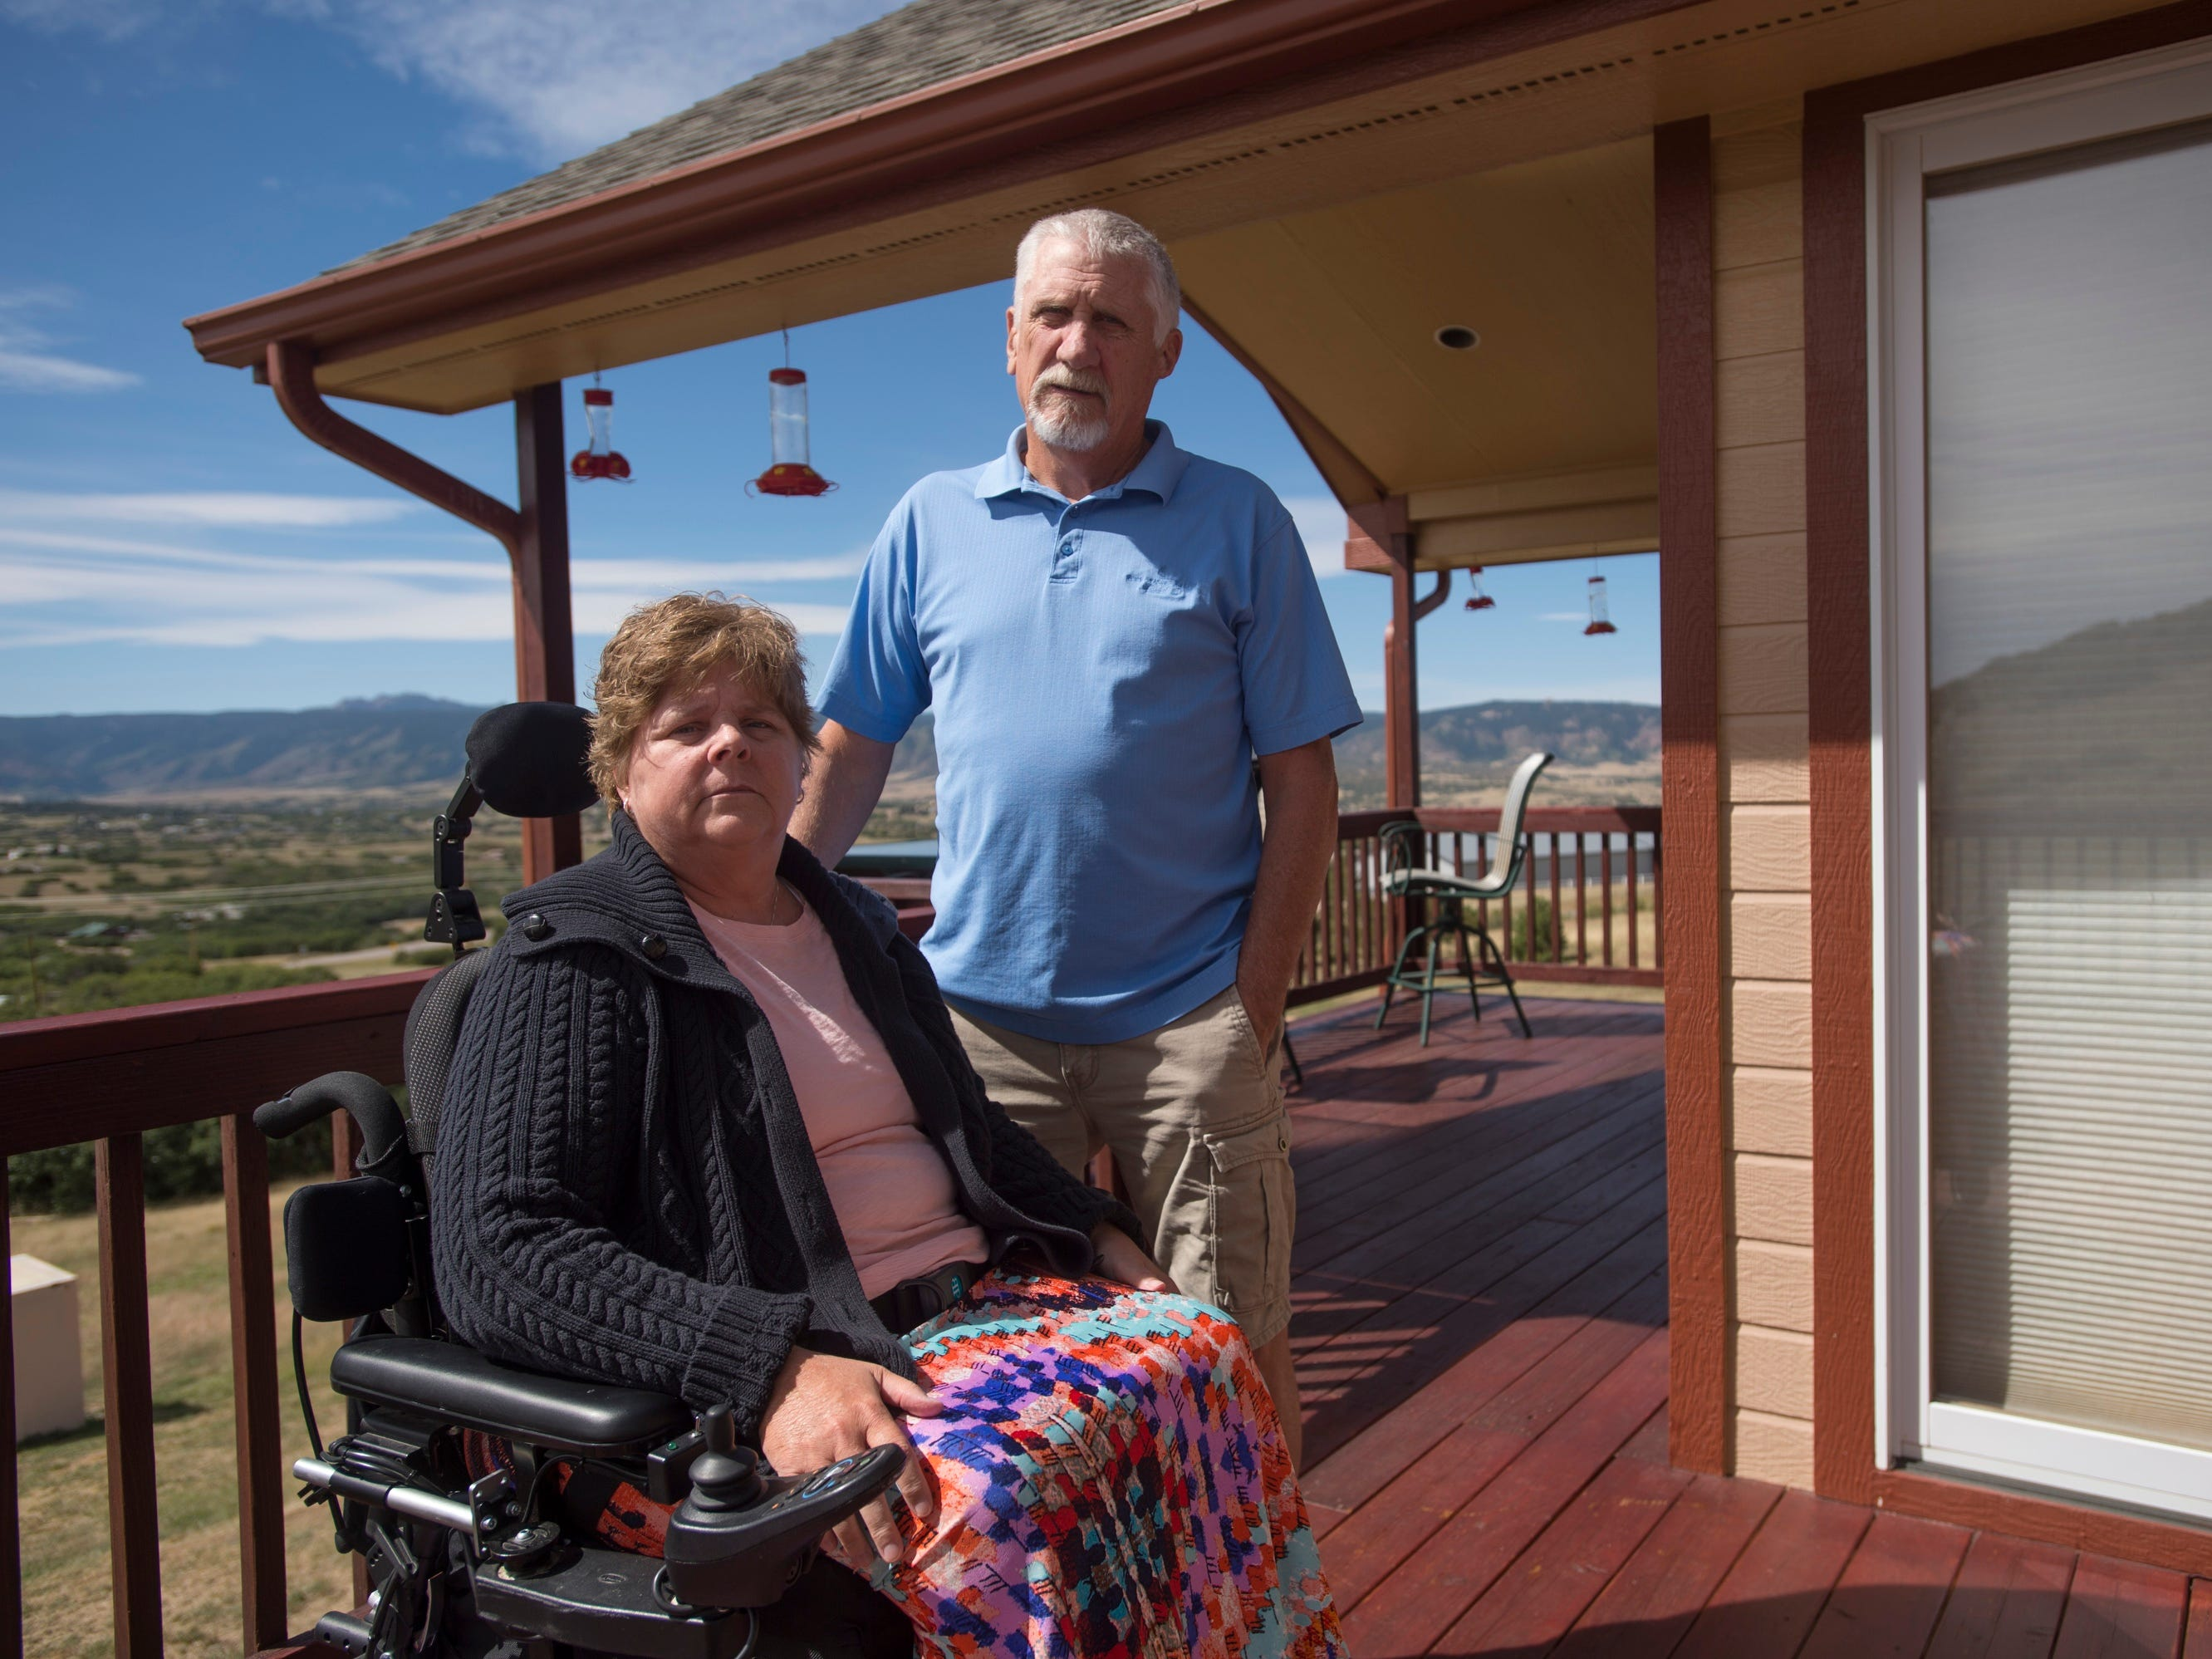 Robbin Smith with her husband Ed at their home in Castle Rock, Colorado.